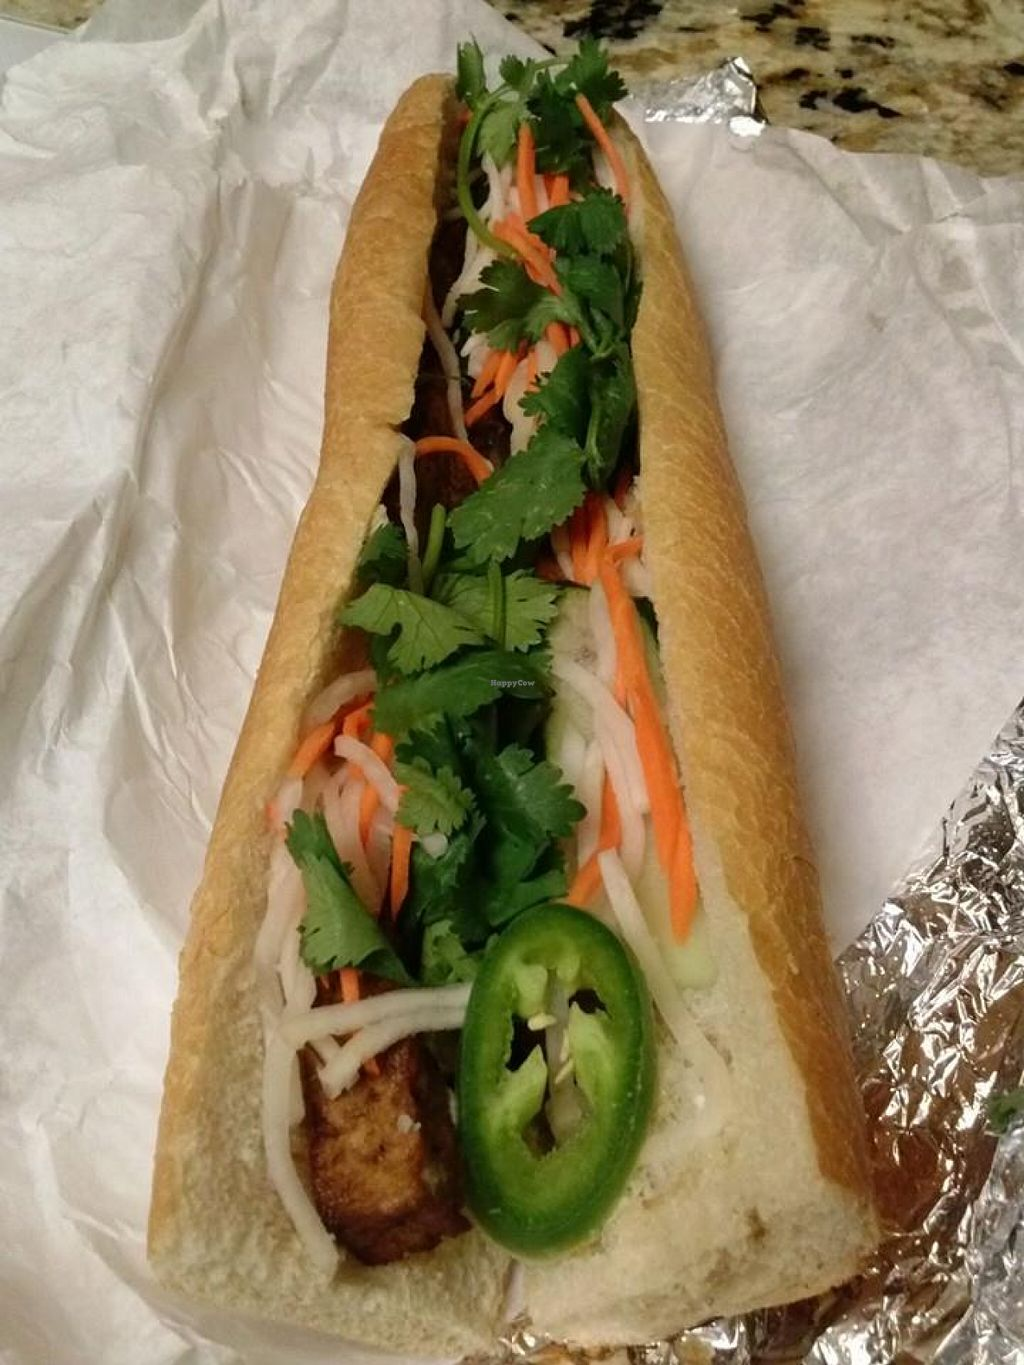 """Photo of REMOVED: Mandoline Grill - Food Truck  by <a href=""""/members/profile/Sonja%20and%20Dirk"""">Sonja and Dirk</a> <br/>banh mi <br/> August 10, 2015  - <a href='/contact/abuse/image/50015/113070'>Report</a>"""